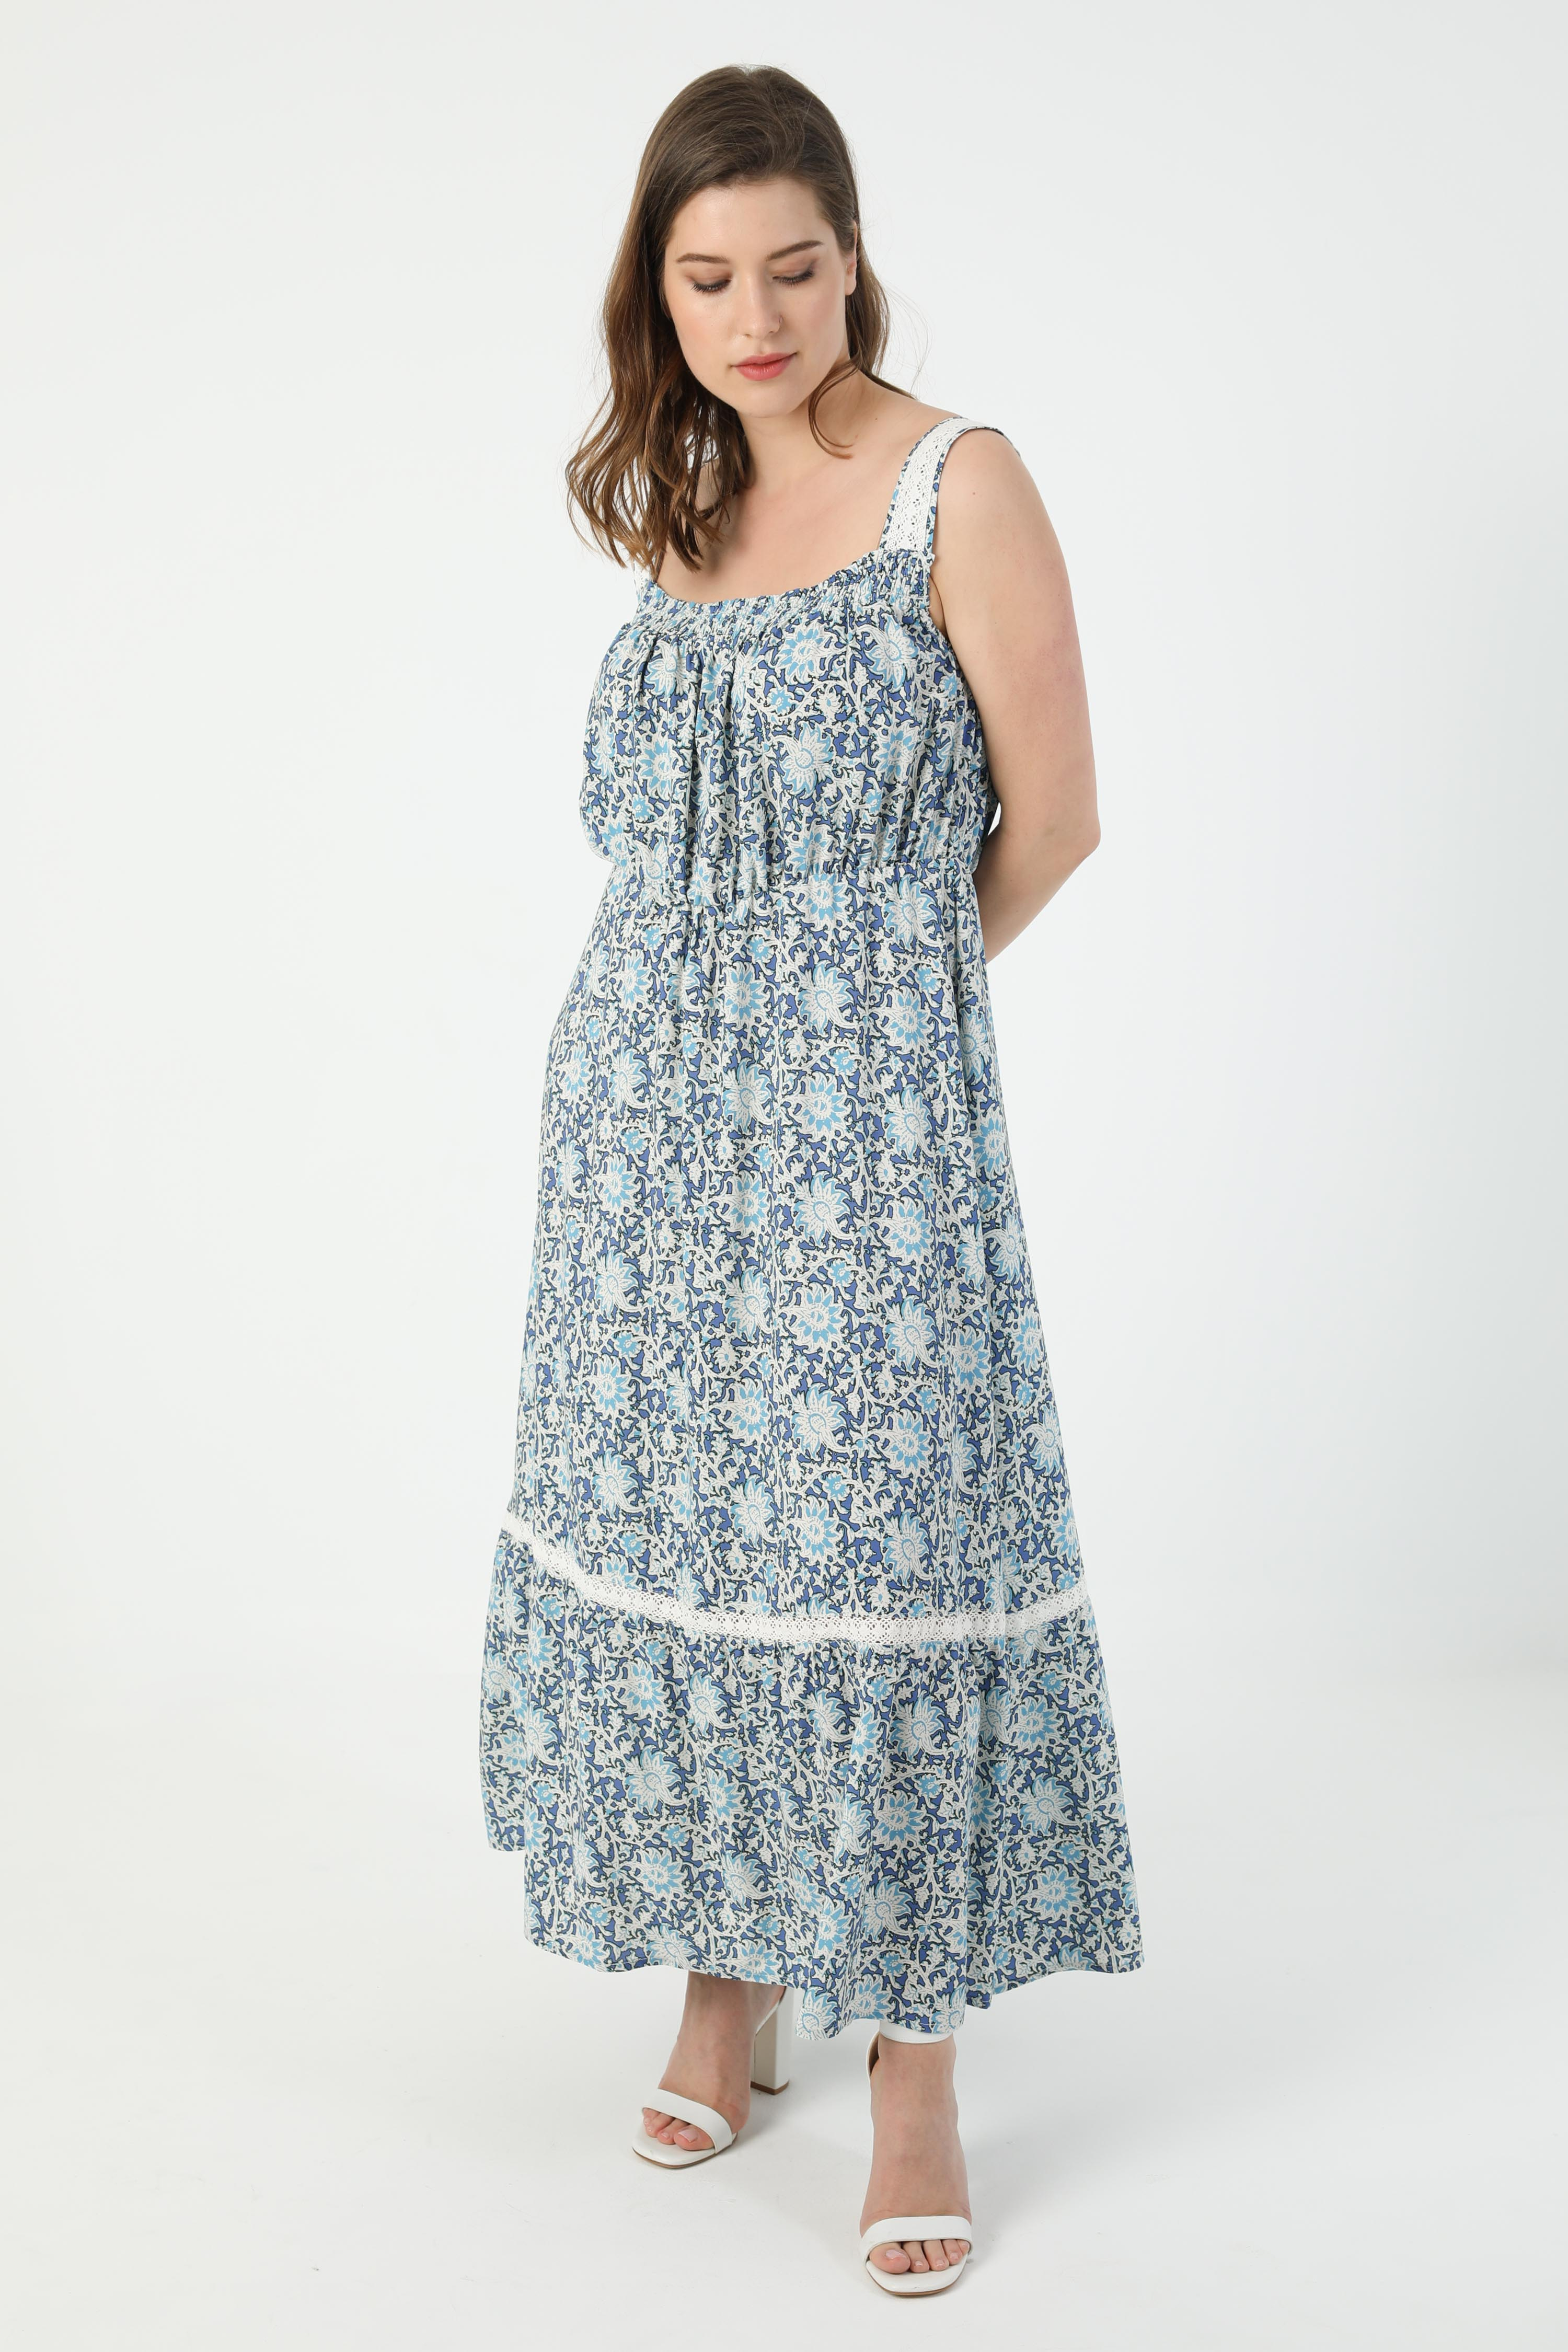 Printed dress with straps (shipping May 20/25)